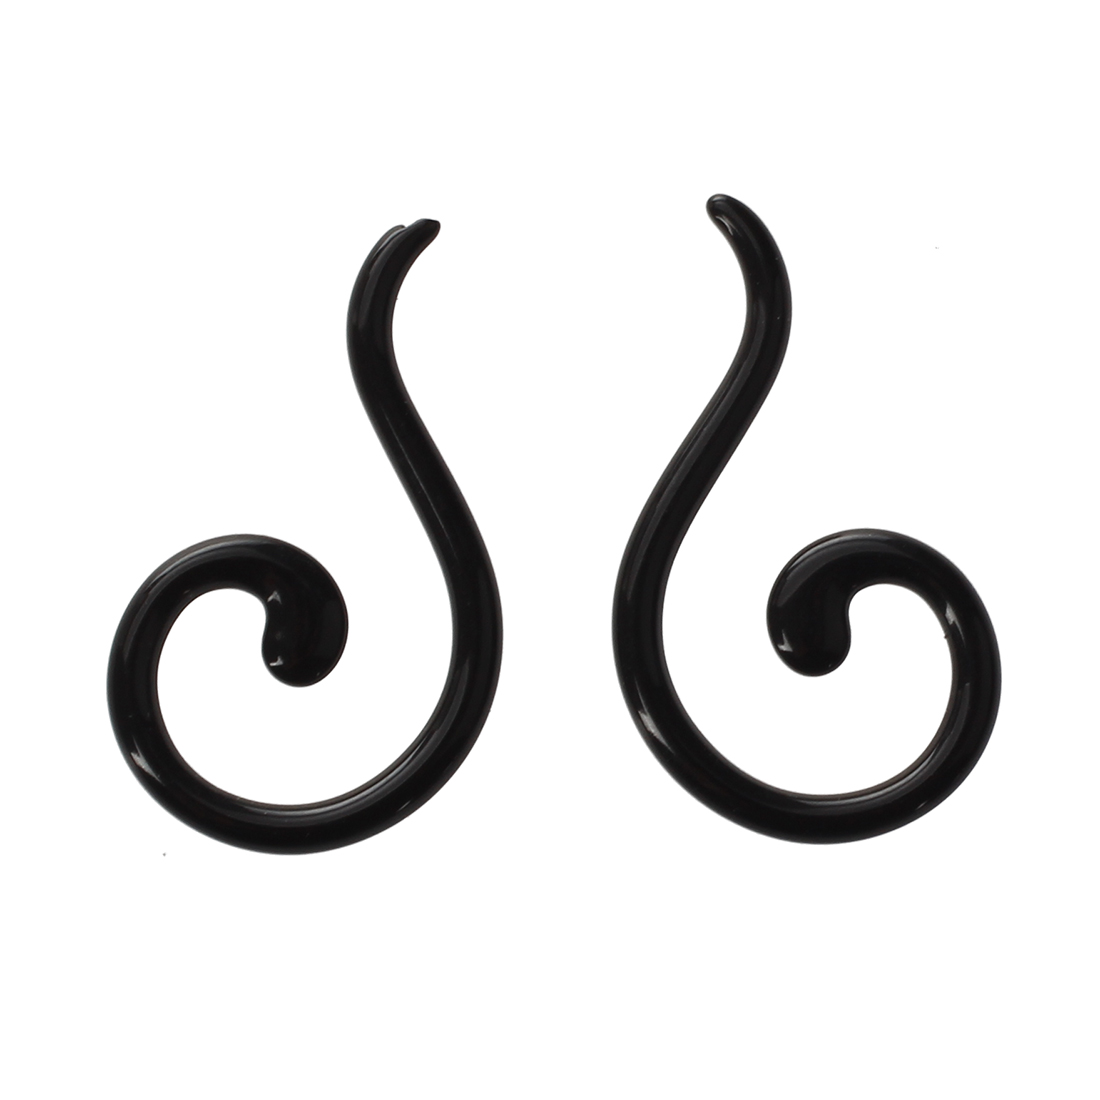 1 pair Acrylic Spiral Taper Flesh Tunnel Ear Stretcher Expander Questions Mark Design Earrings--Black,2mm